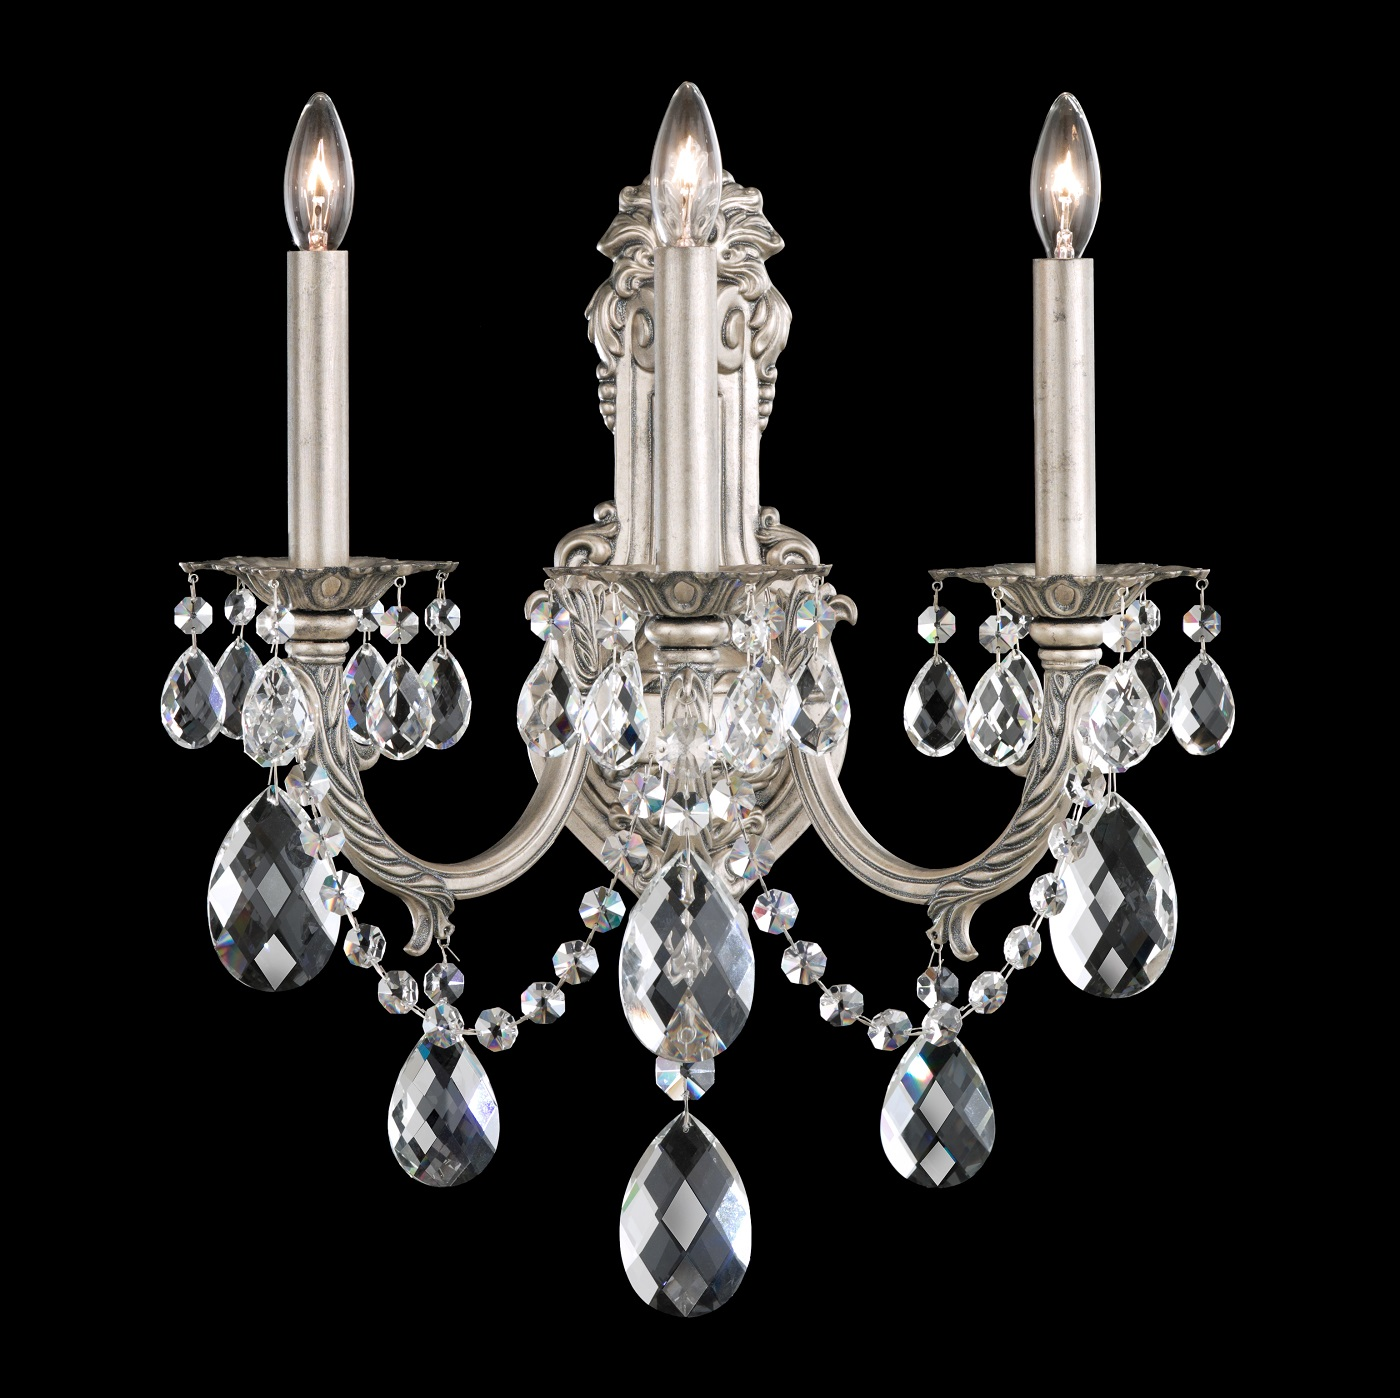 Schonbek Wall Sconces for Sale